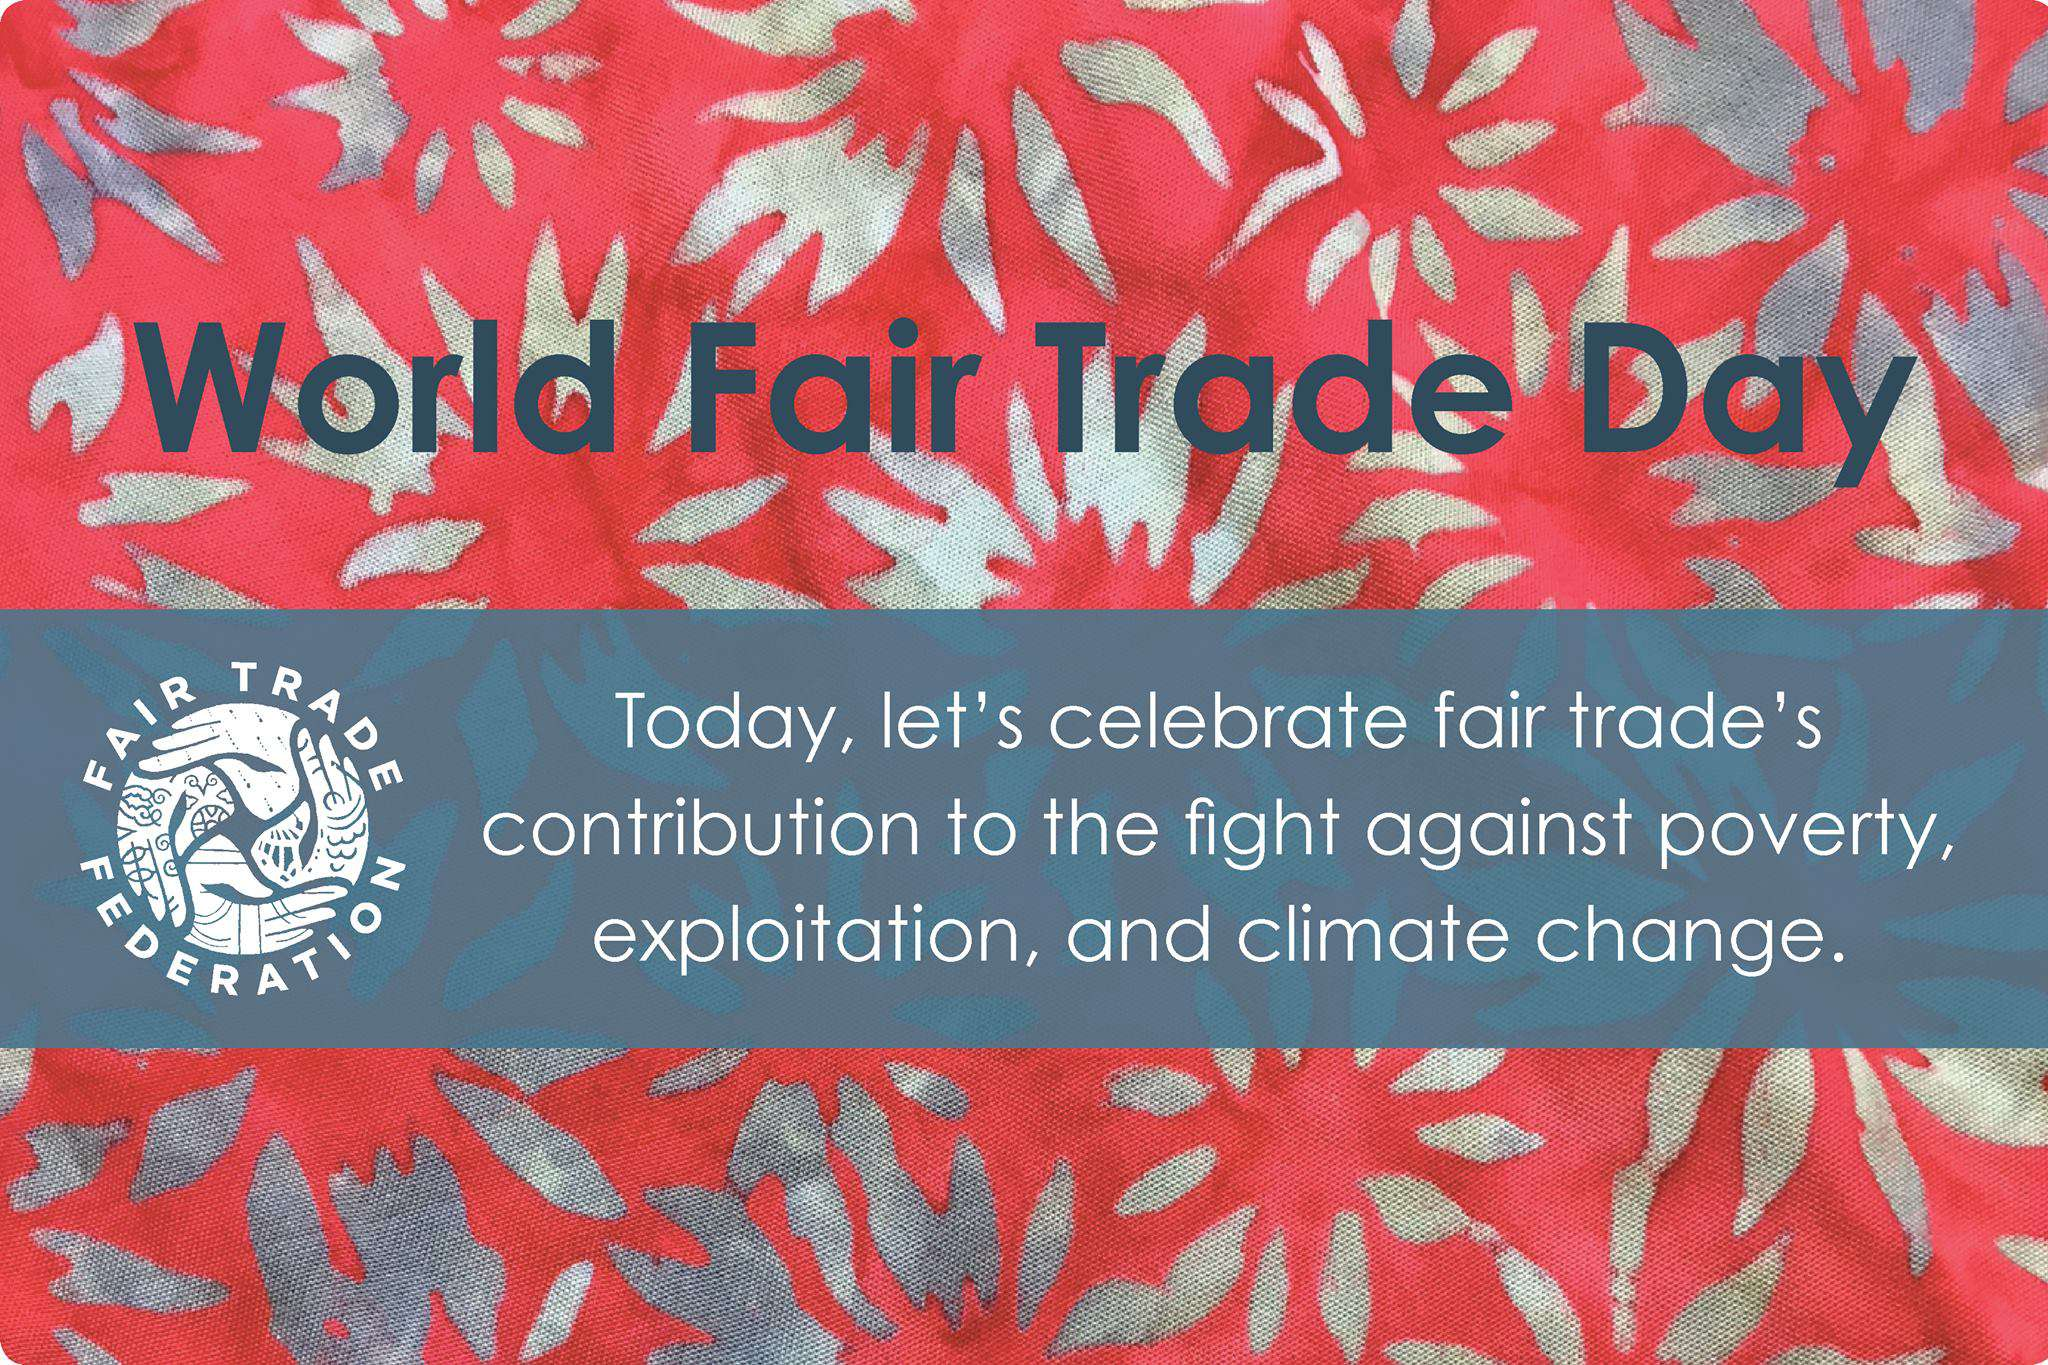 Fair Trade Day Wishes for Instagram